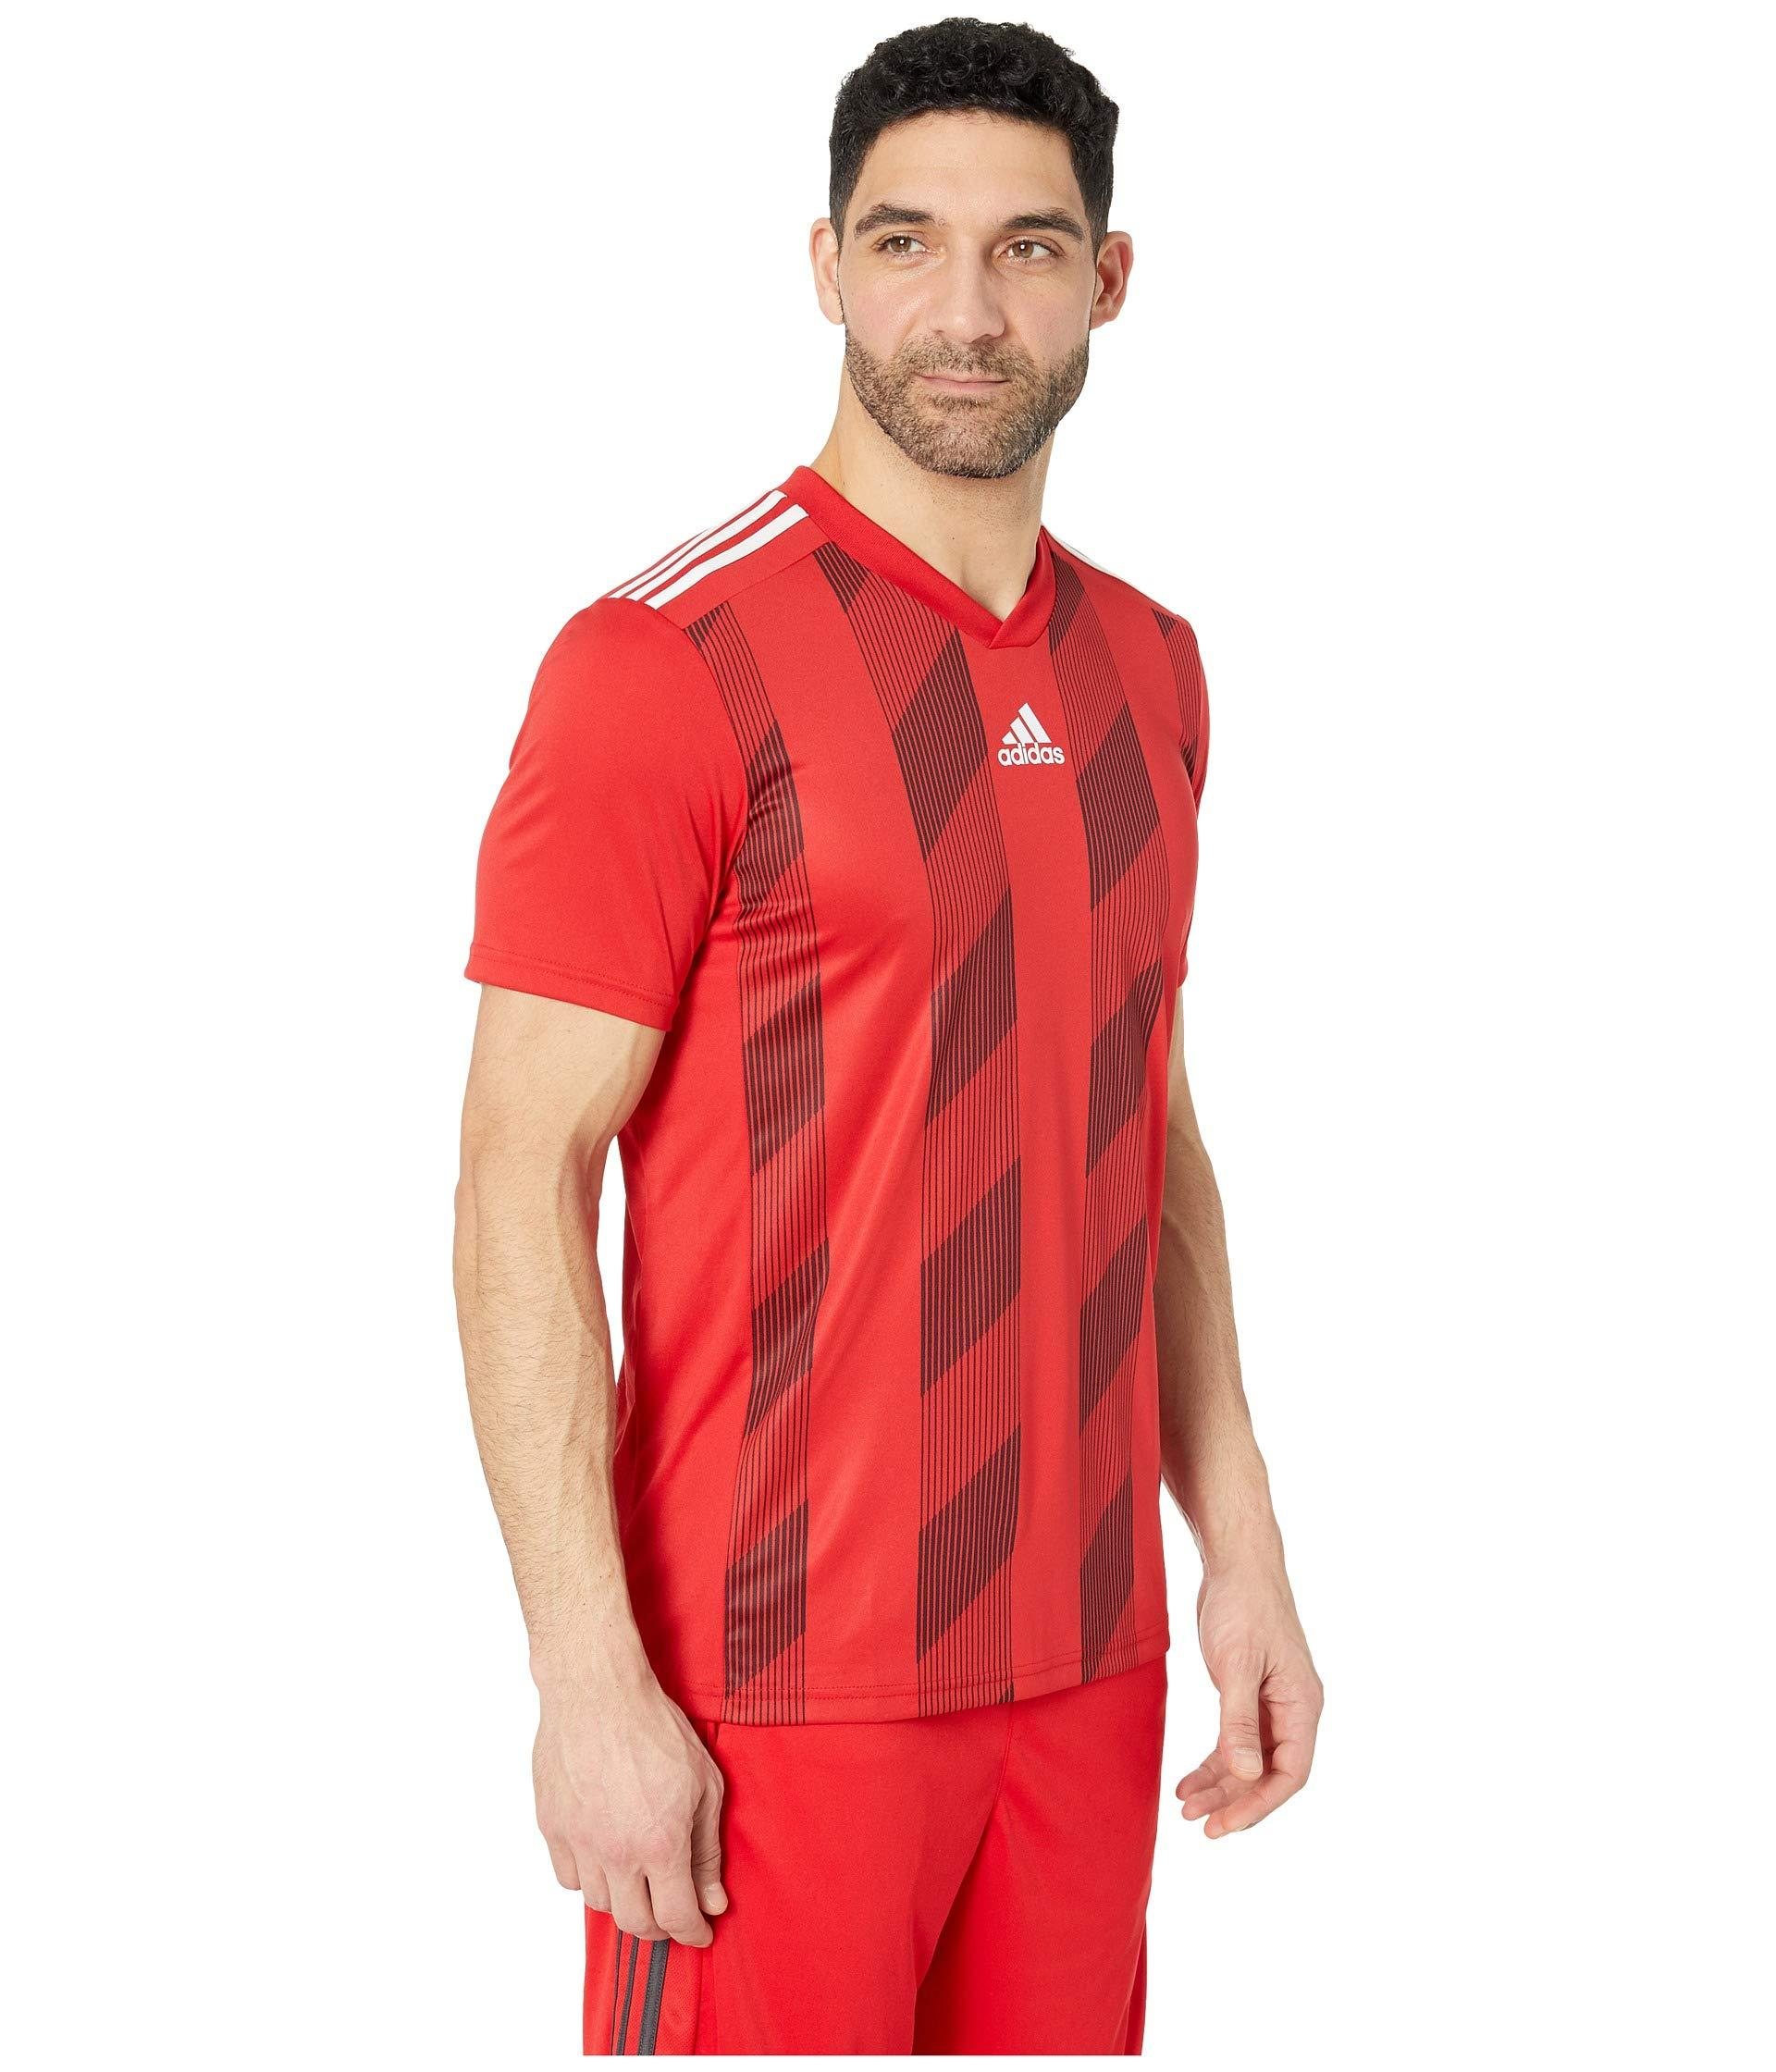 adidas Synthetic Striped 19 Jersey (power Red/white) Men's Workout ...